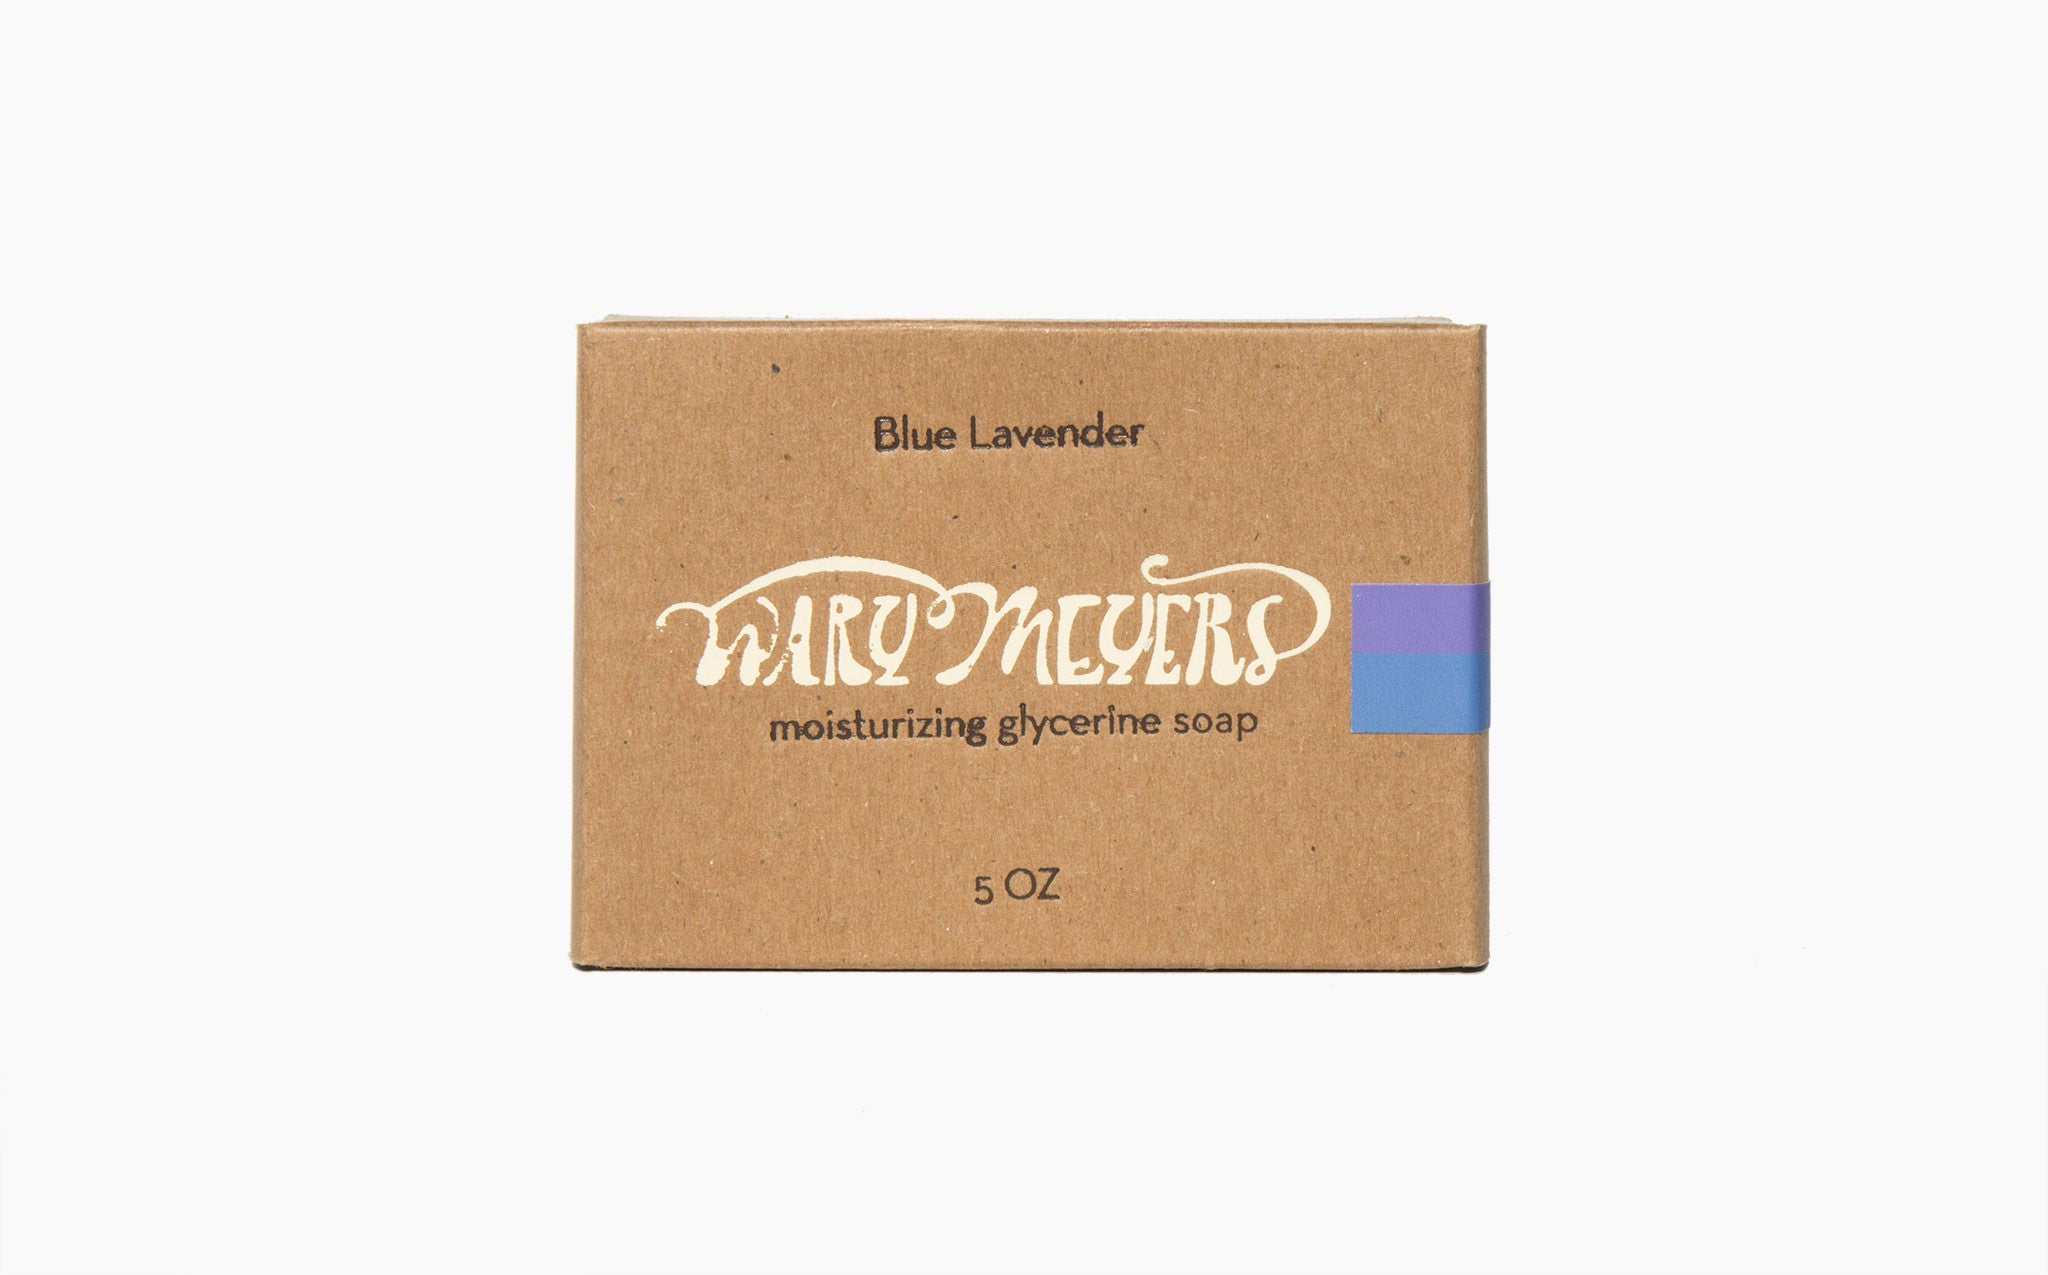 Wary Meyers Blue Lavender Soap